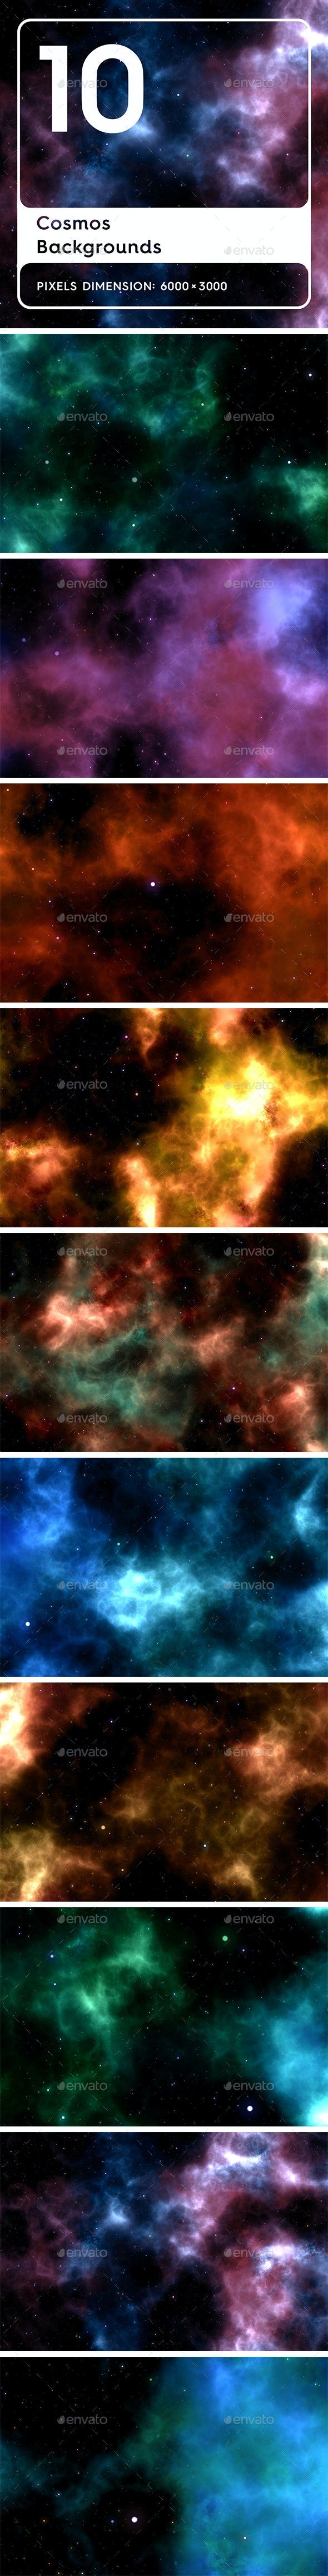 20 Cosmos Backgrounds - Abstract Backgrounds